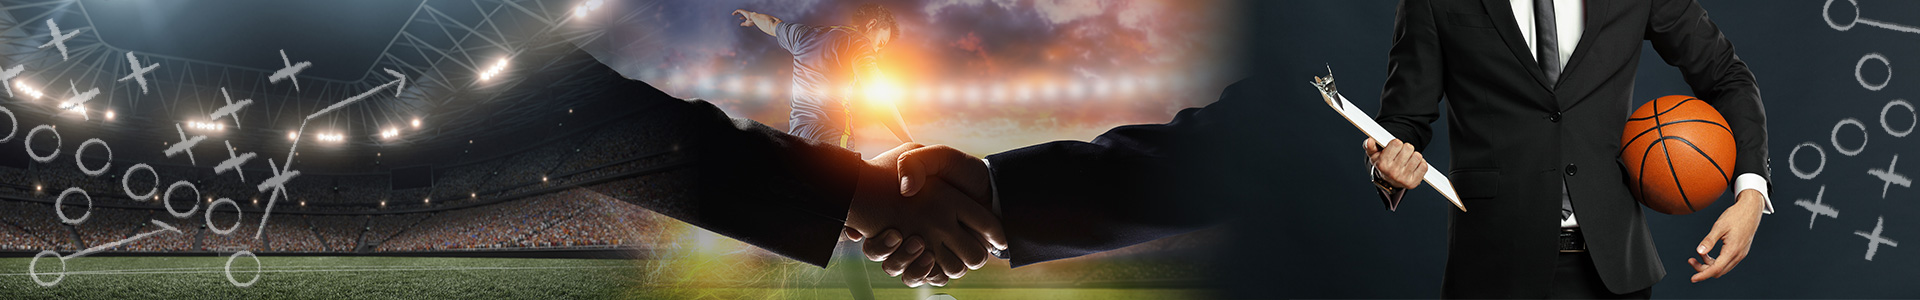 Handshake in front of a sports field